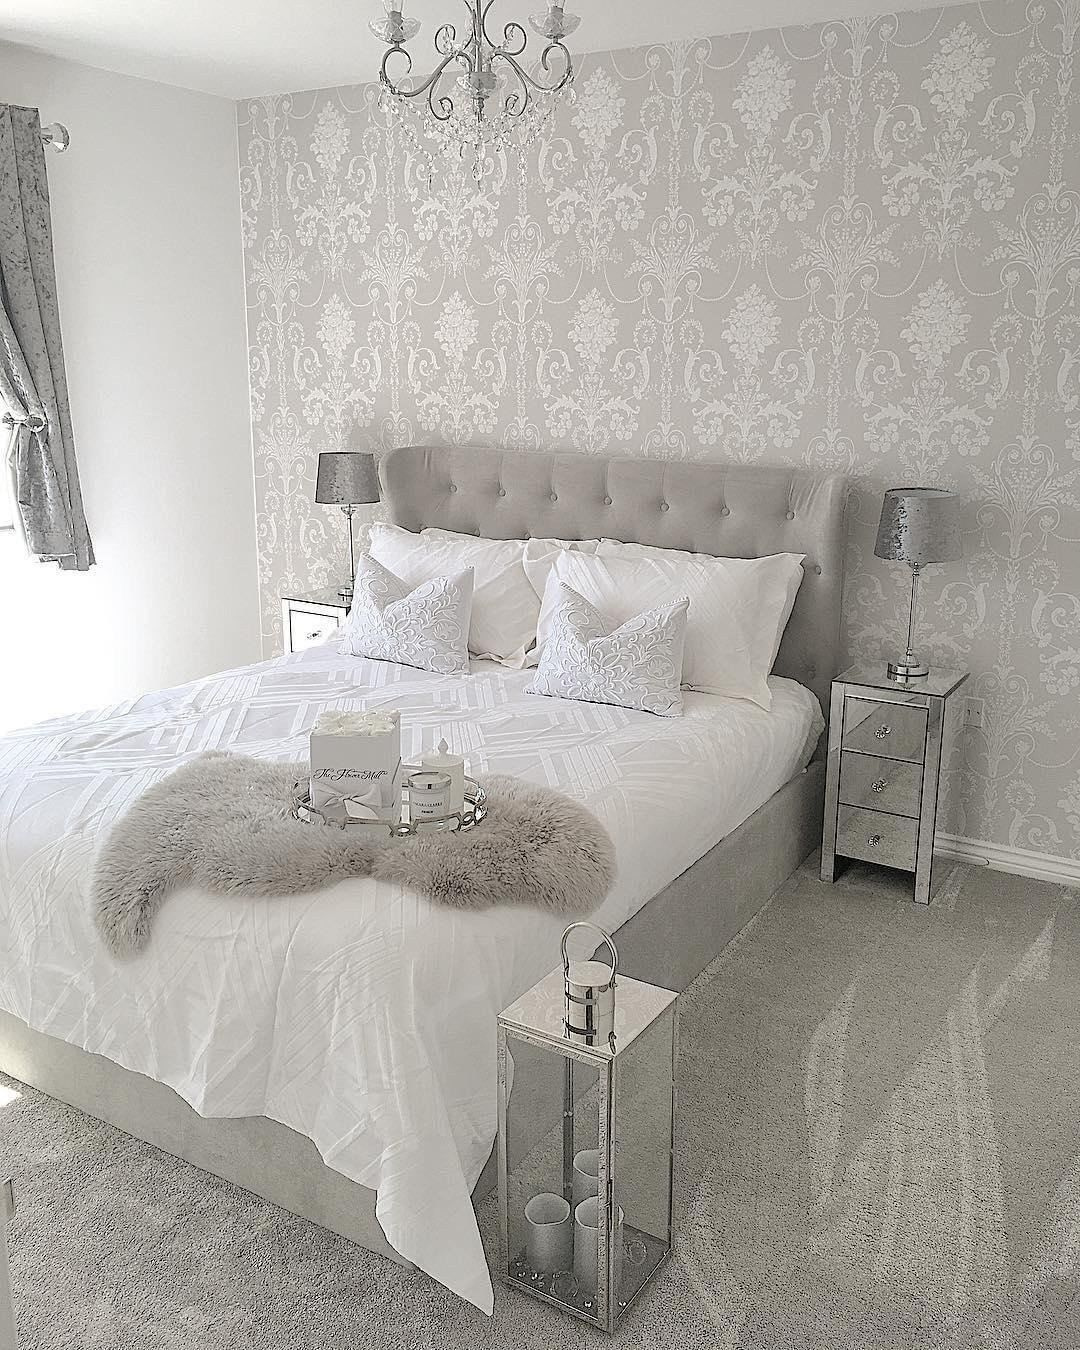 White And Silver Bedrooms Ideas 24 Stunning Grey And Silver Bedroom Ideas With Images In 2020 Silver Bedroom Grey Bedroom Design Grey Wallpaper Bedroom